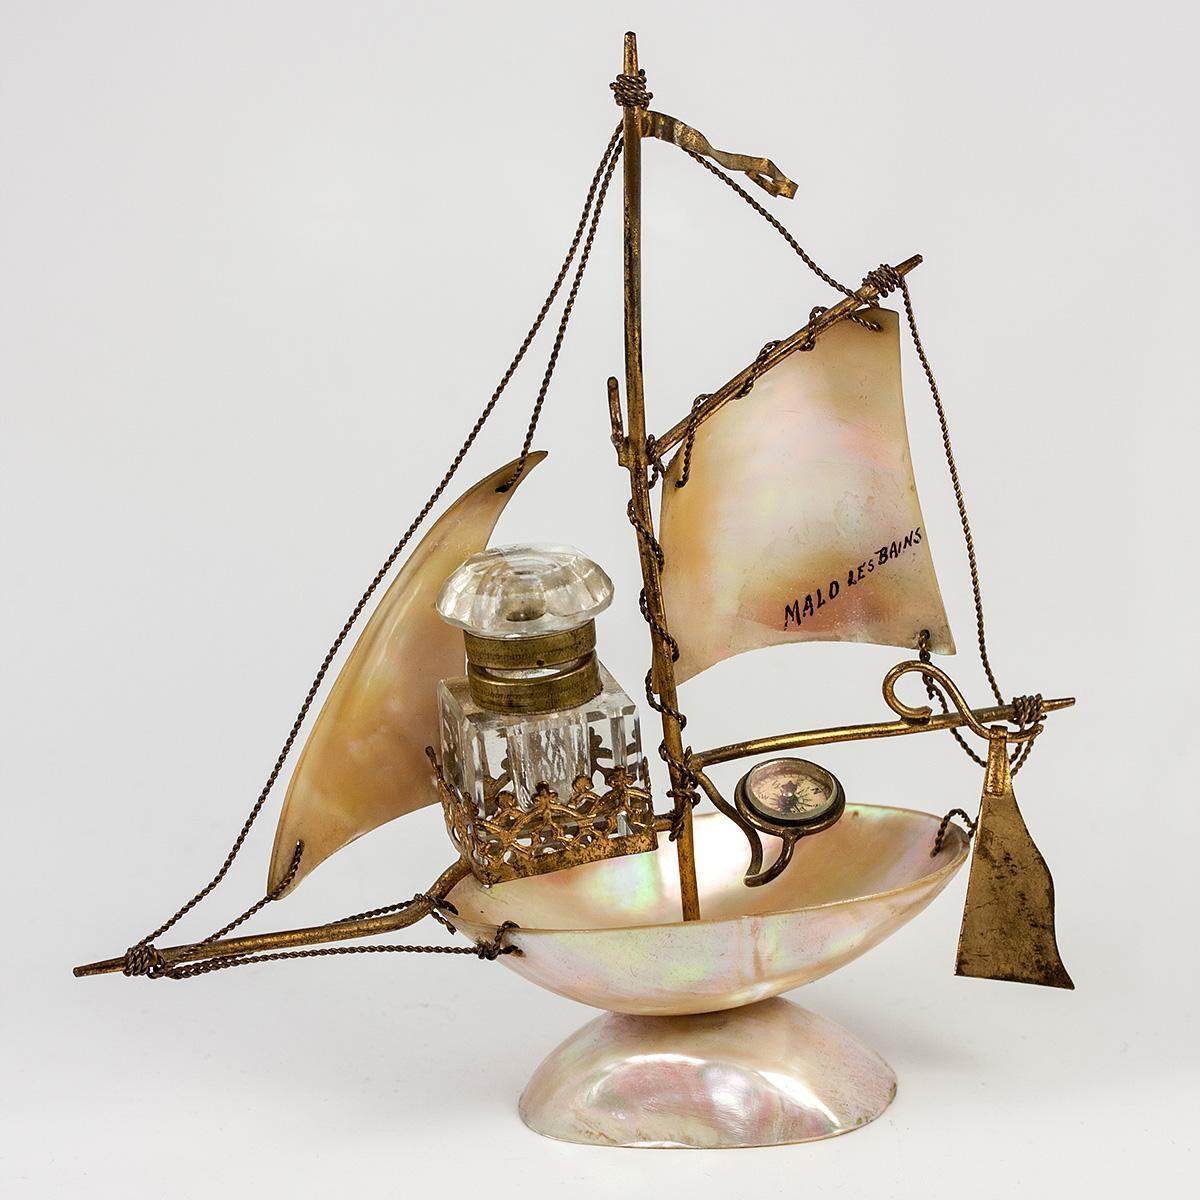 Antique French Mother of Pearl Shell Sail Boat is a Desk Stand, Inkwell, Compass & Pocket Watch Holder